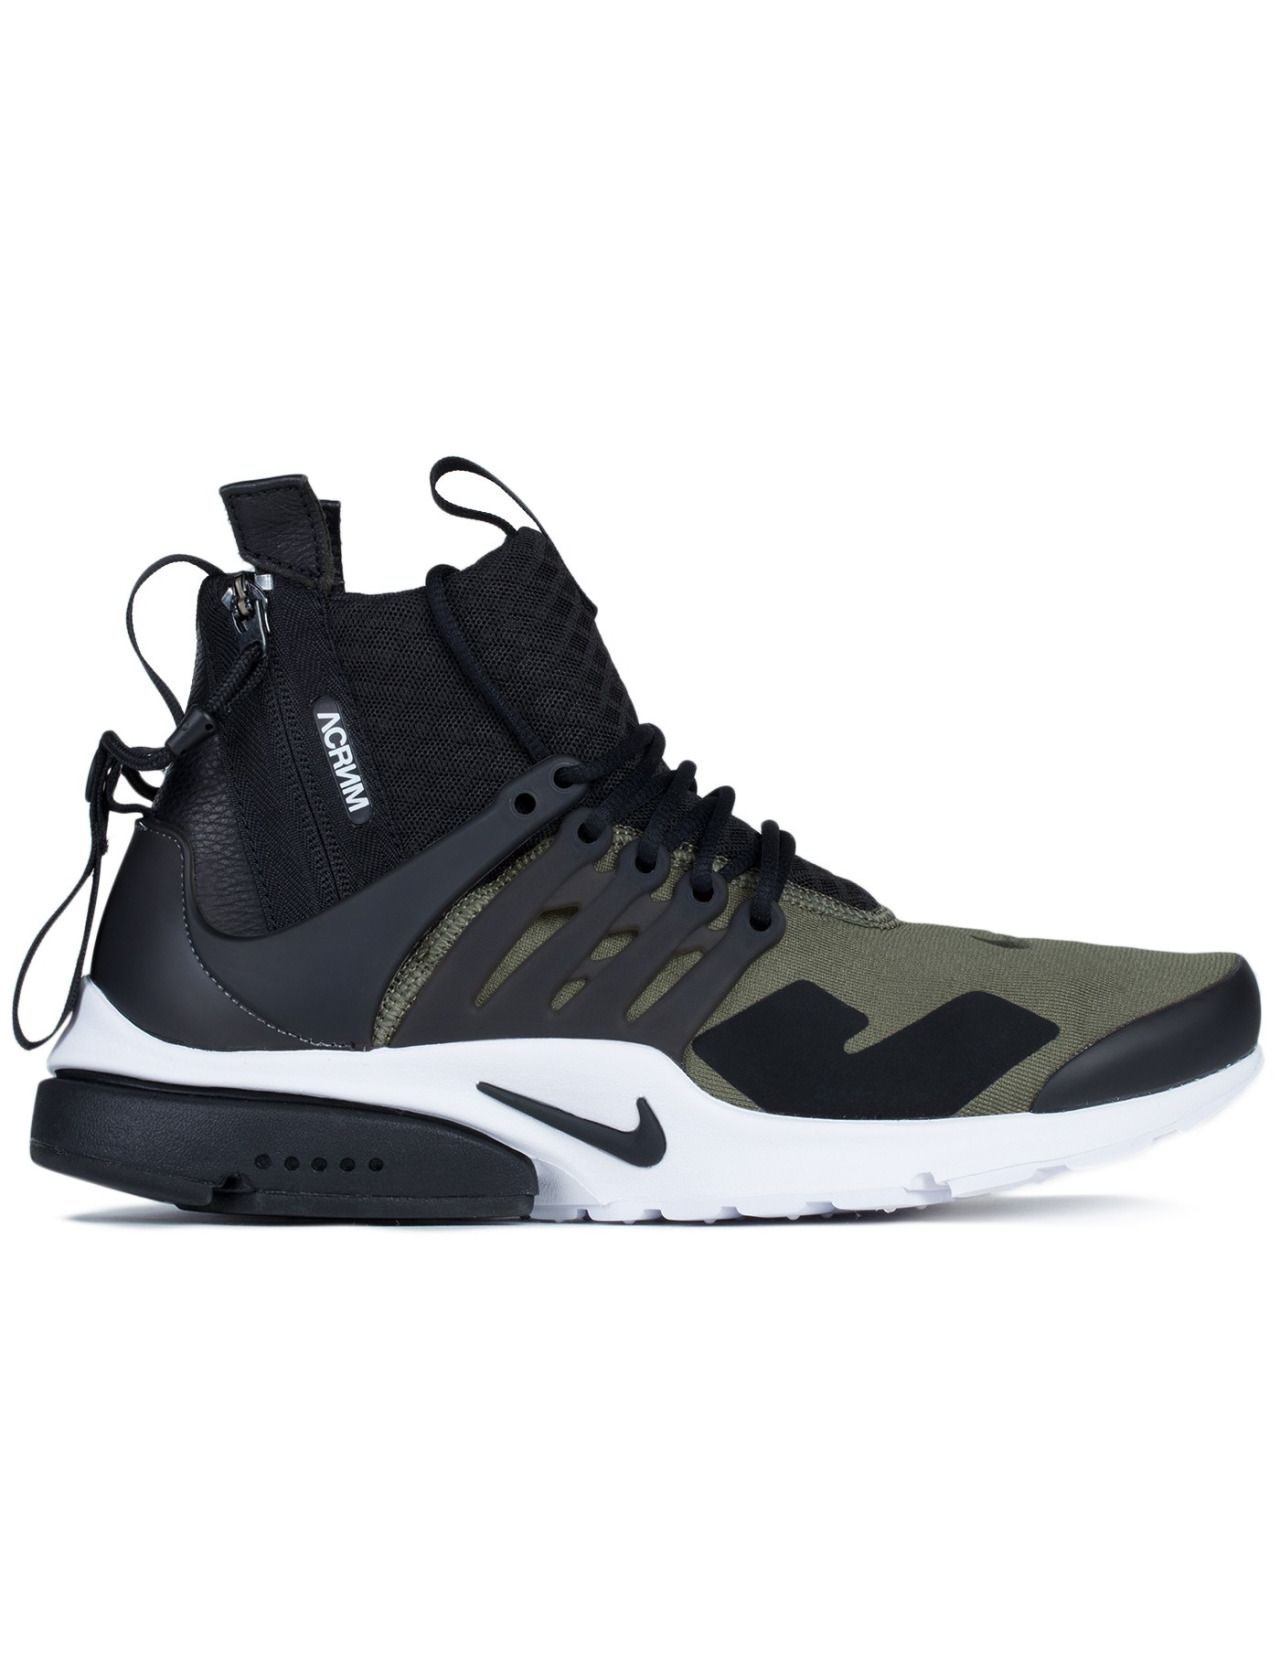 ACRONYM x Nike Air Presto Mid  Olive  (via HBX) Roshe Shoes 7e2701e434